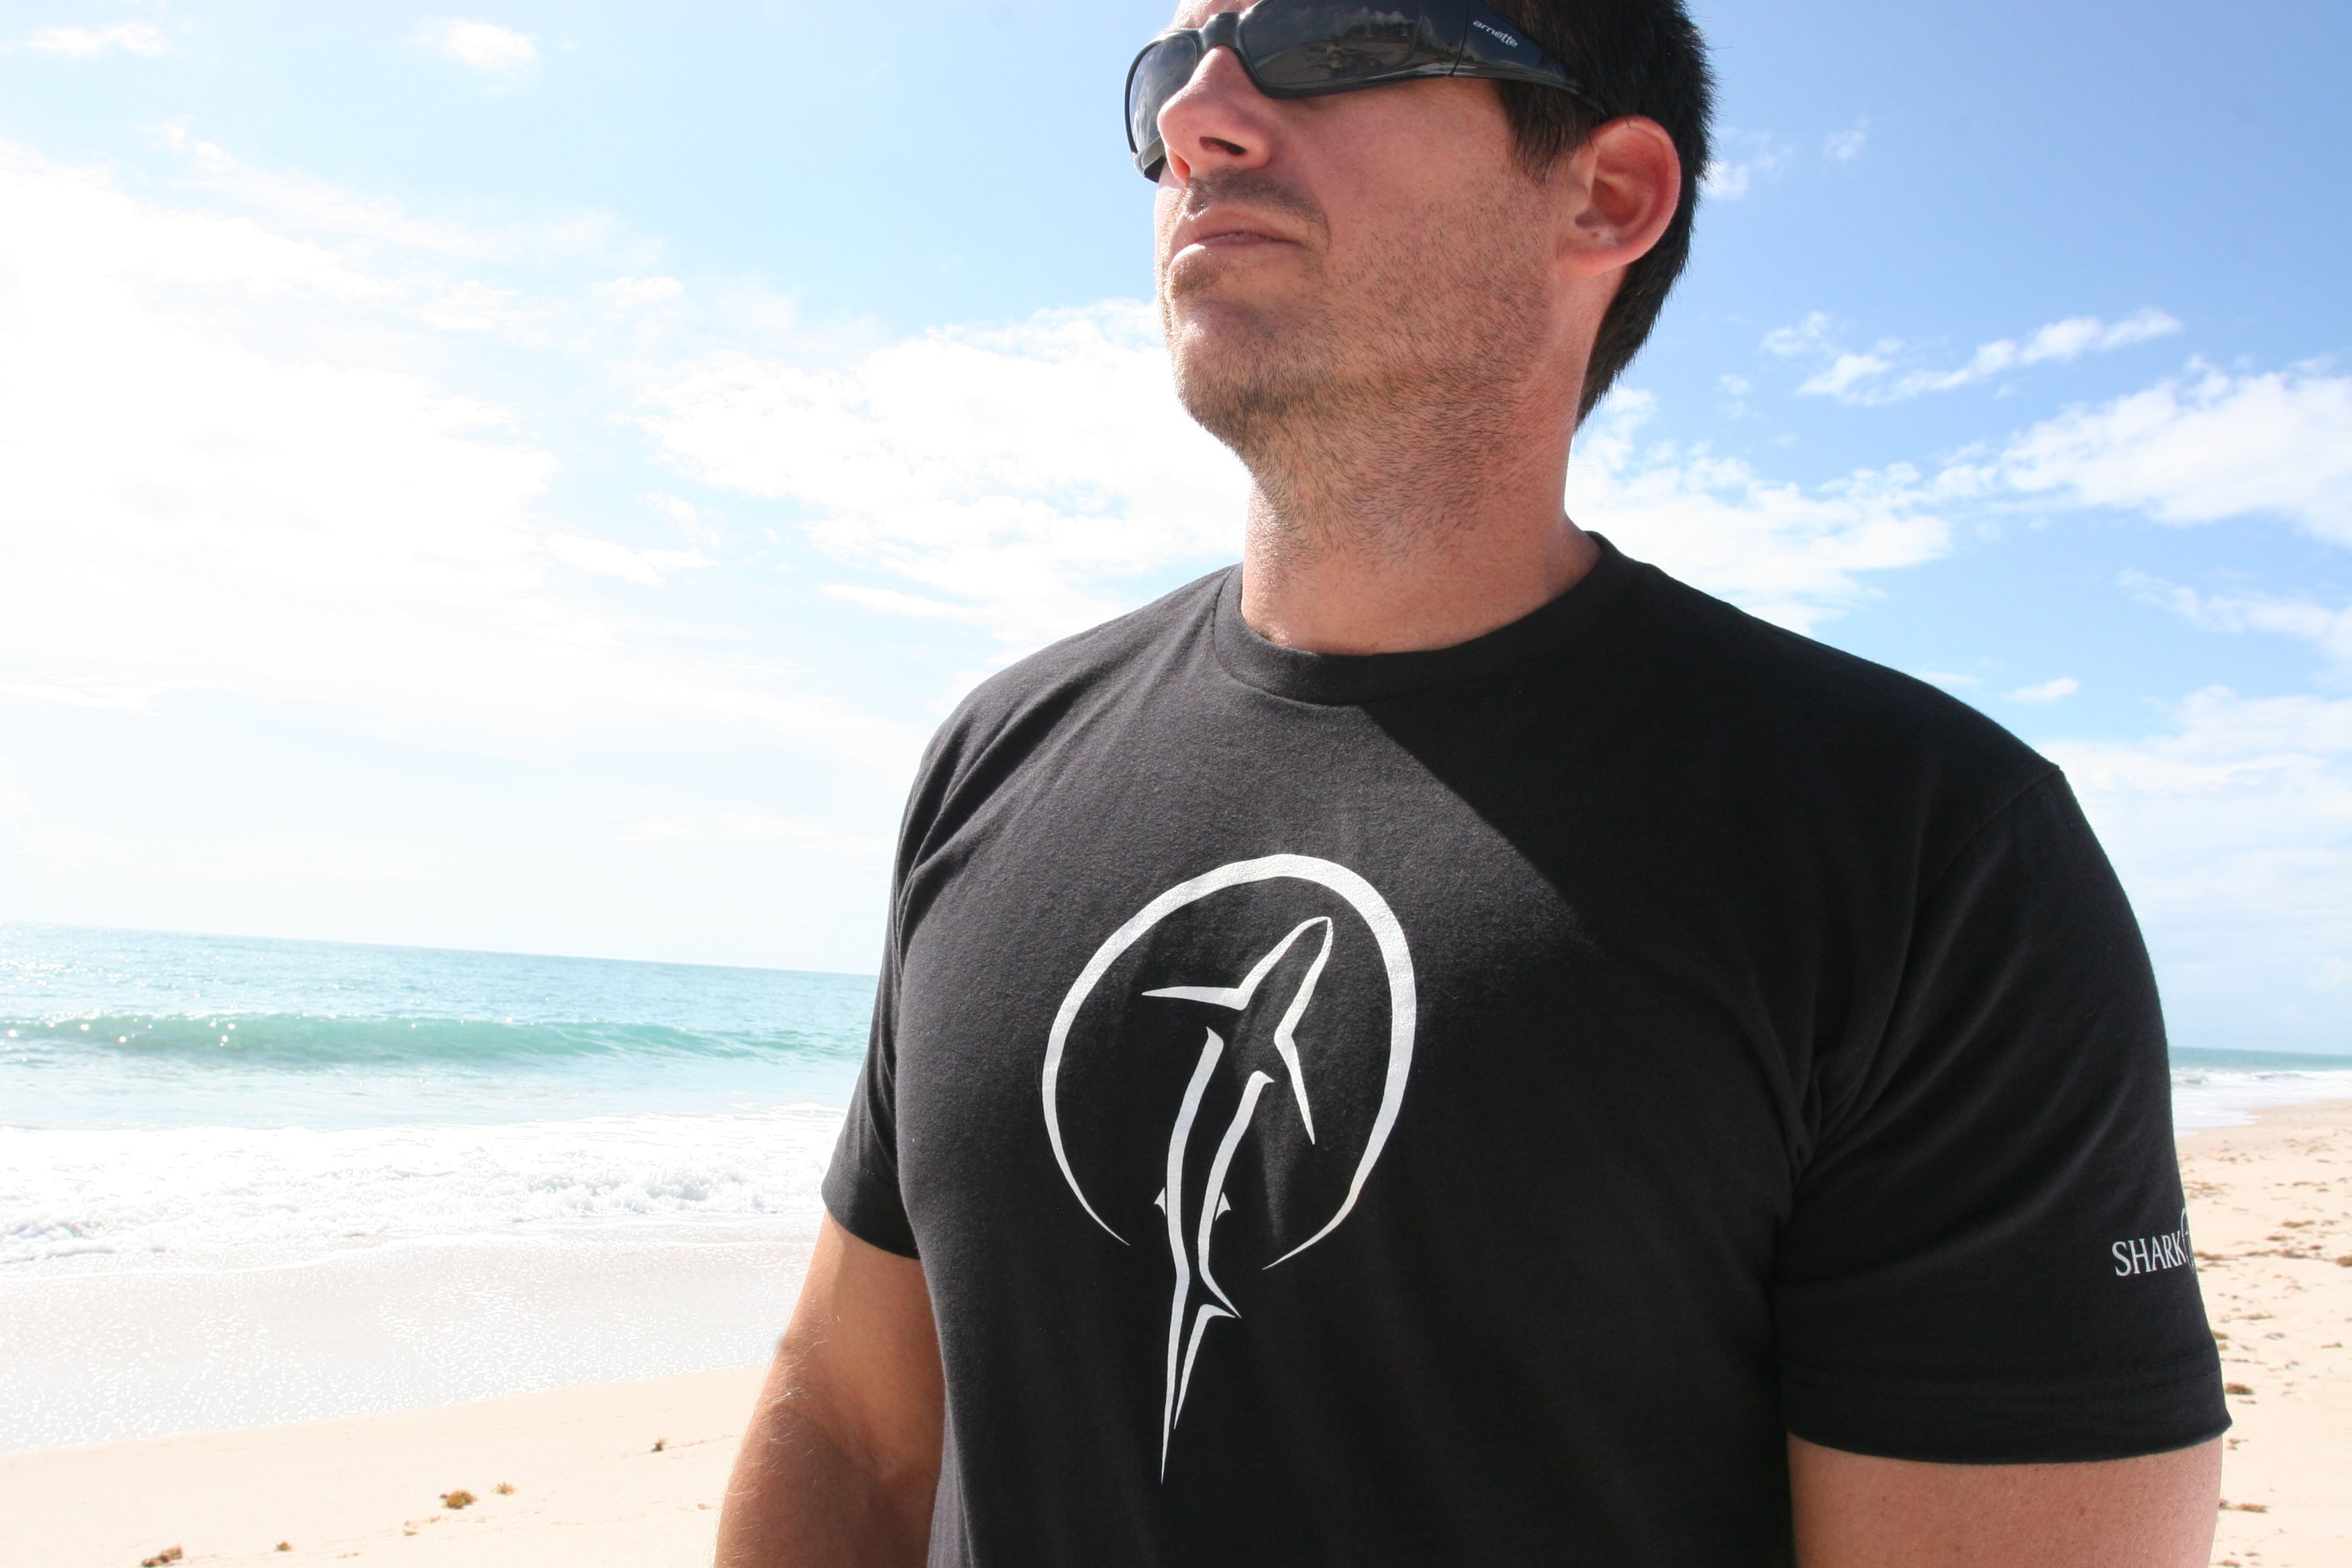 Shark Zen - -T-shirt on model